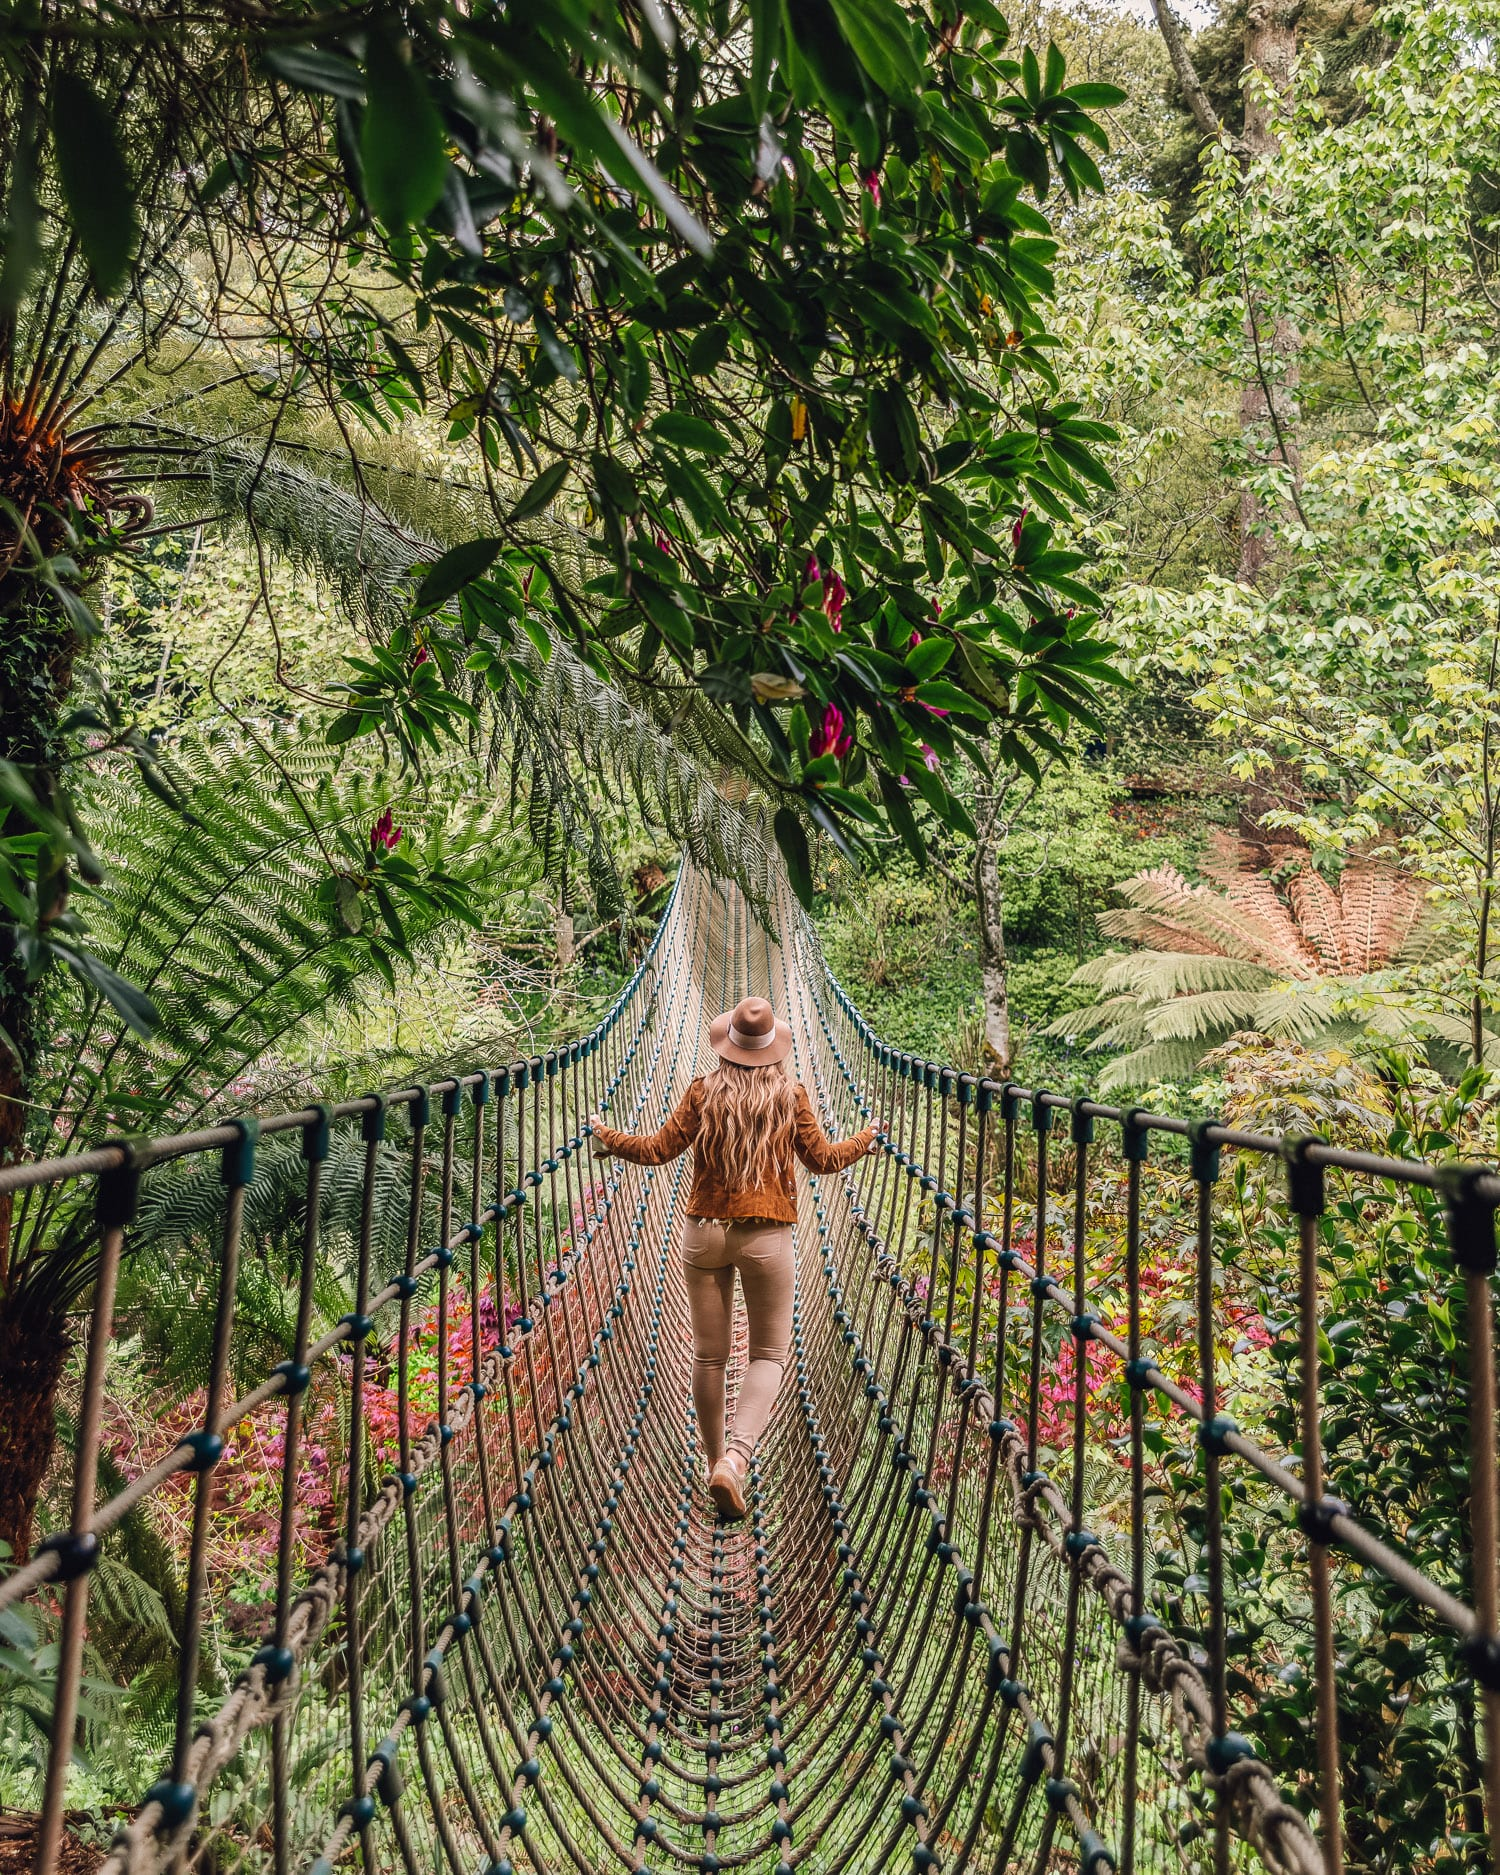 The Burma Rope Bridge, The Lost Gardens of Heligan | Cornwall, UK